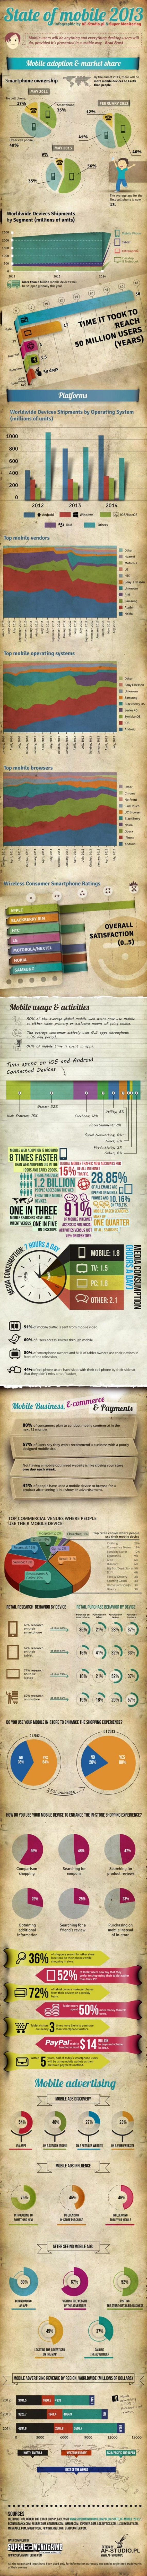 Mobile Growth Statistics - 2013 Infographic